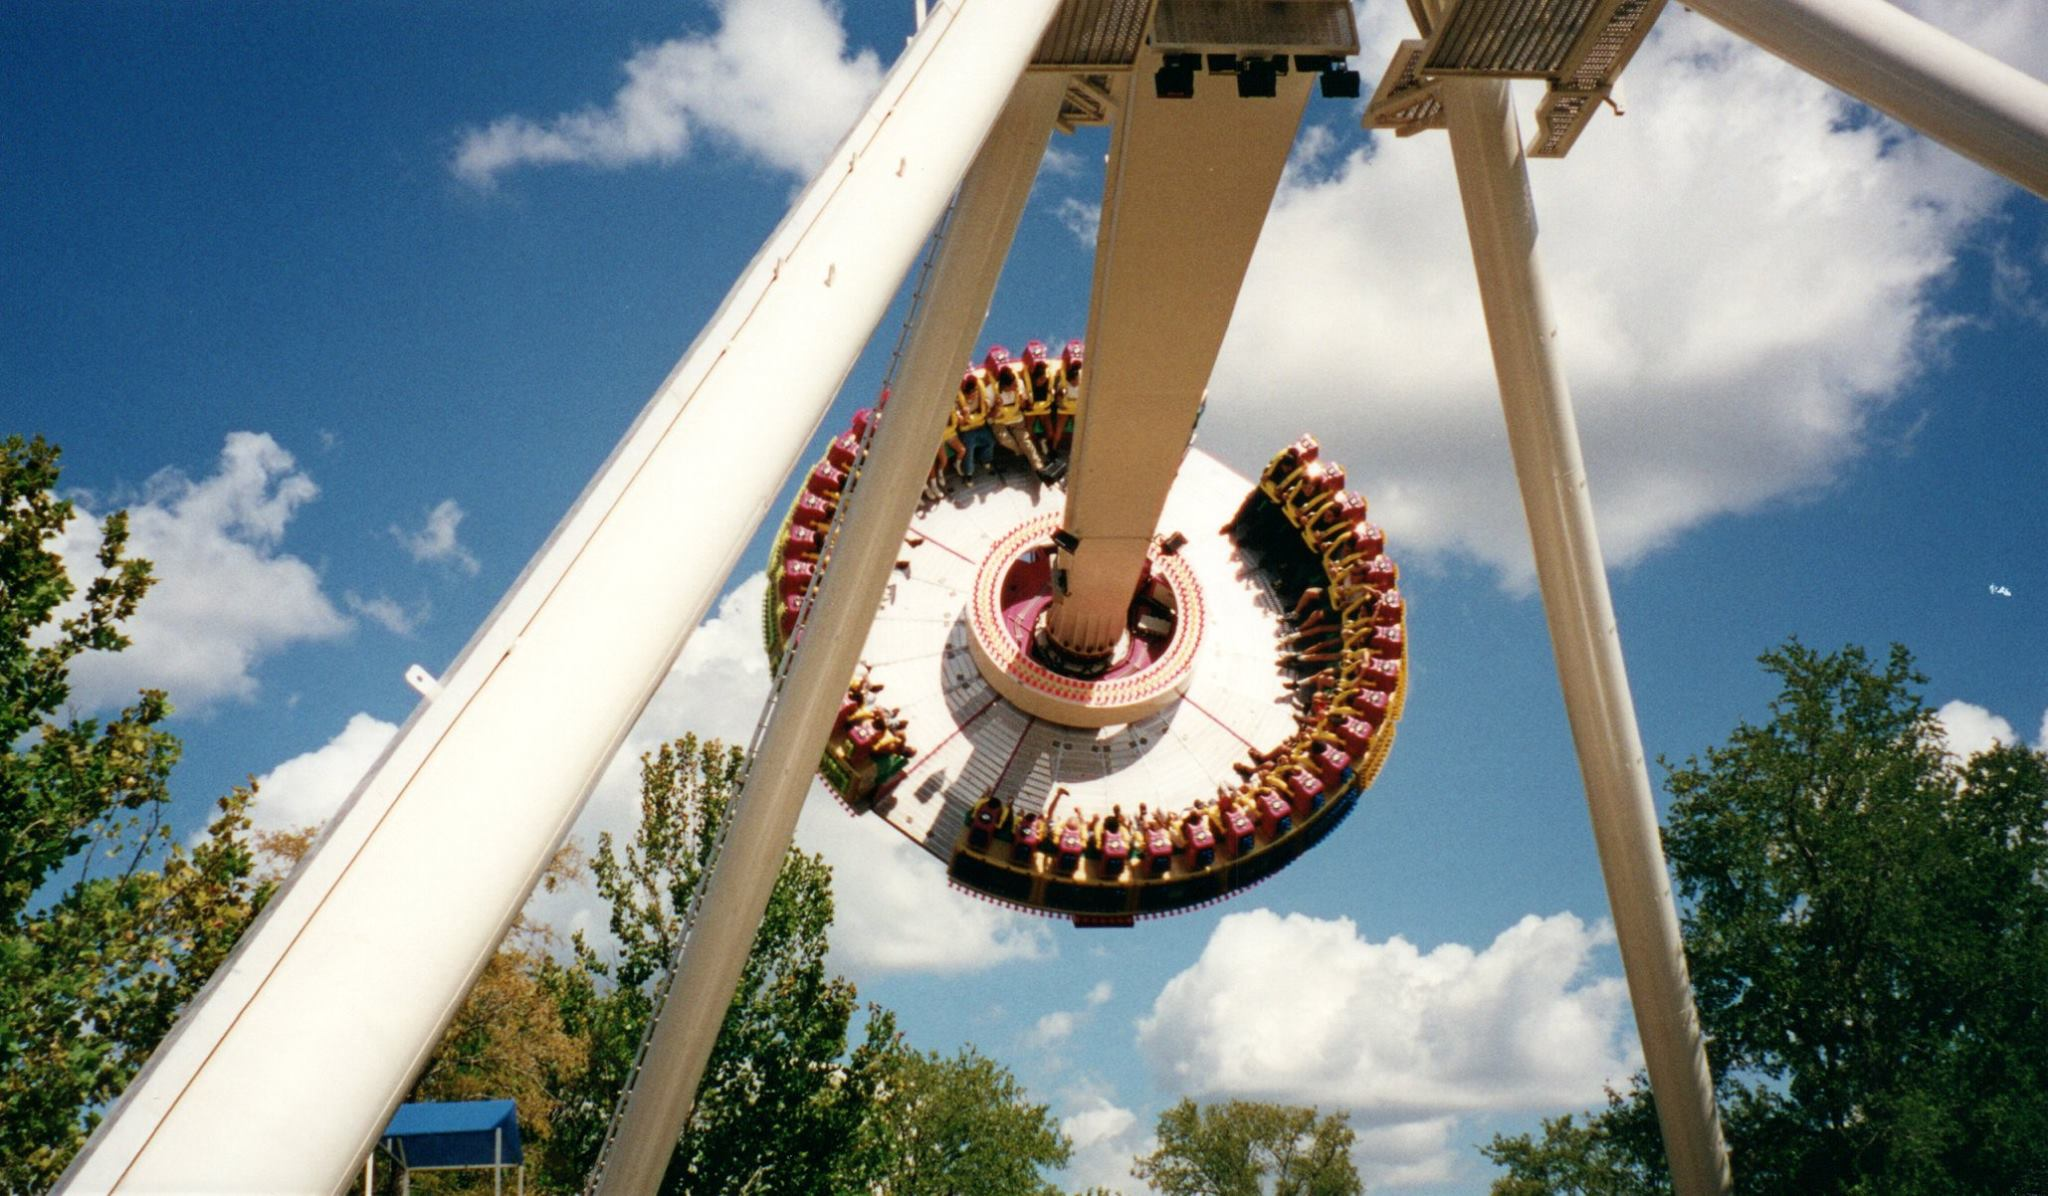 Frisbee was once located in Los Festivales. Credit: American Coaster Enthusiasts